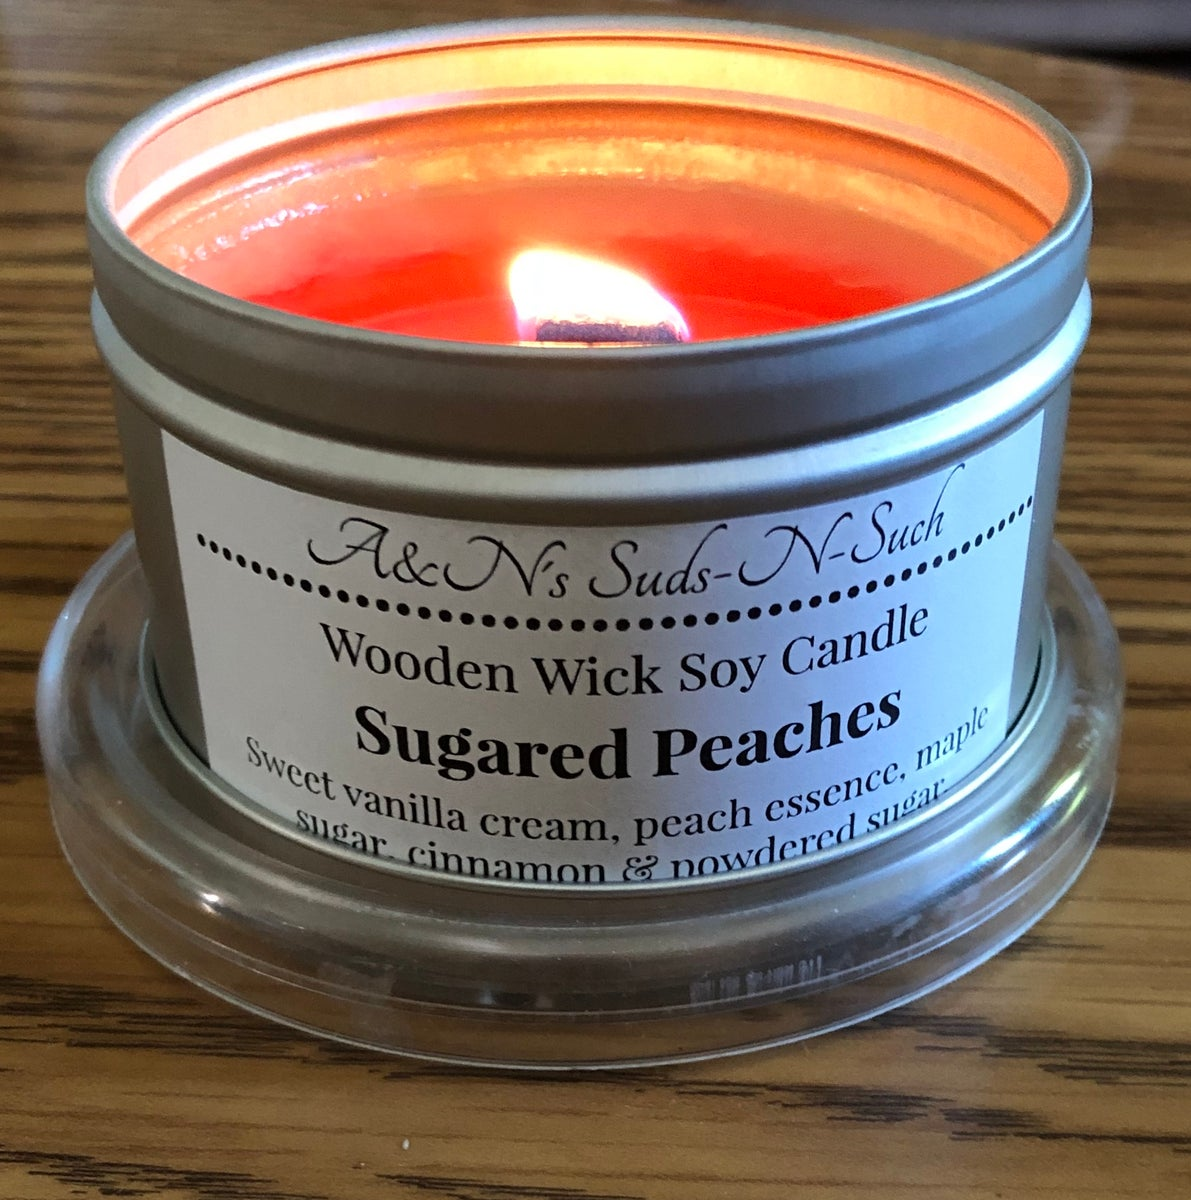 A Amp N S Suds N Such Llc Wooden Wick Soy Candles 6oz